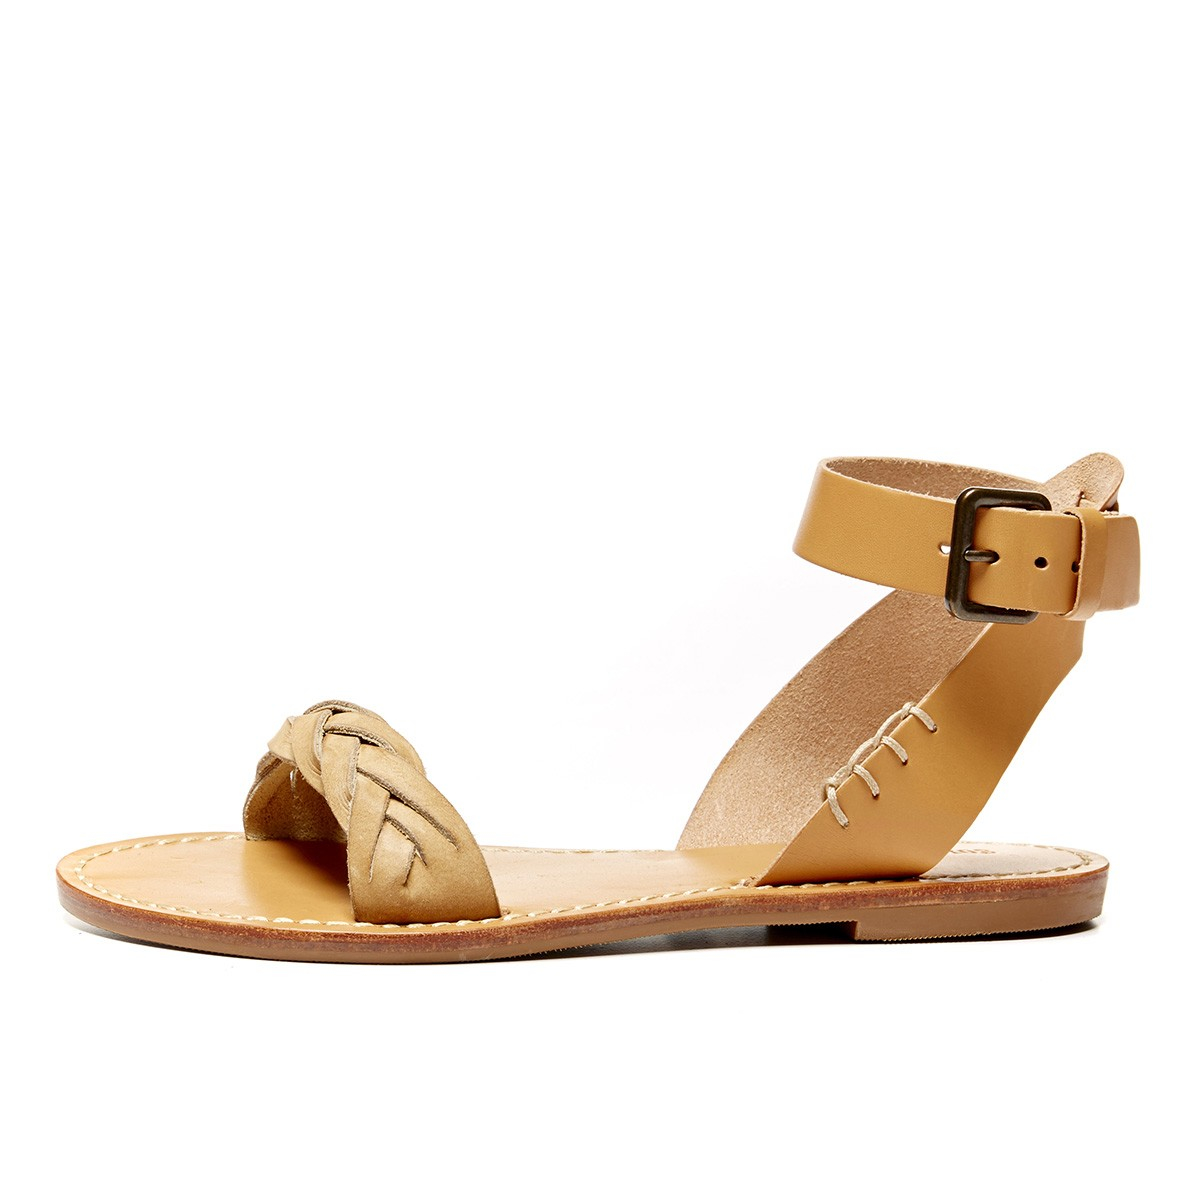 3addb40faf03 Lyst - Soludos Leather Braided Ankle Strap Sandal in Natural